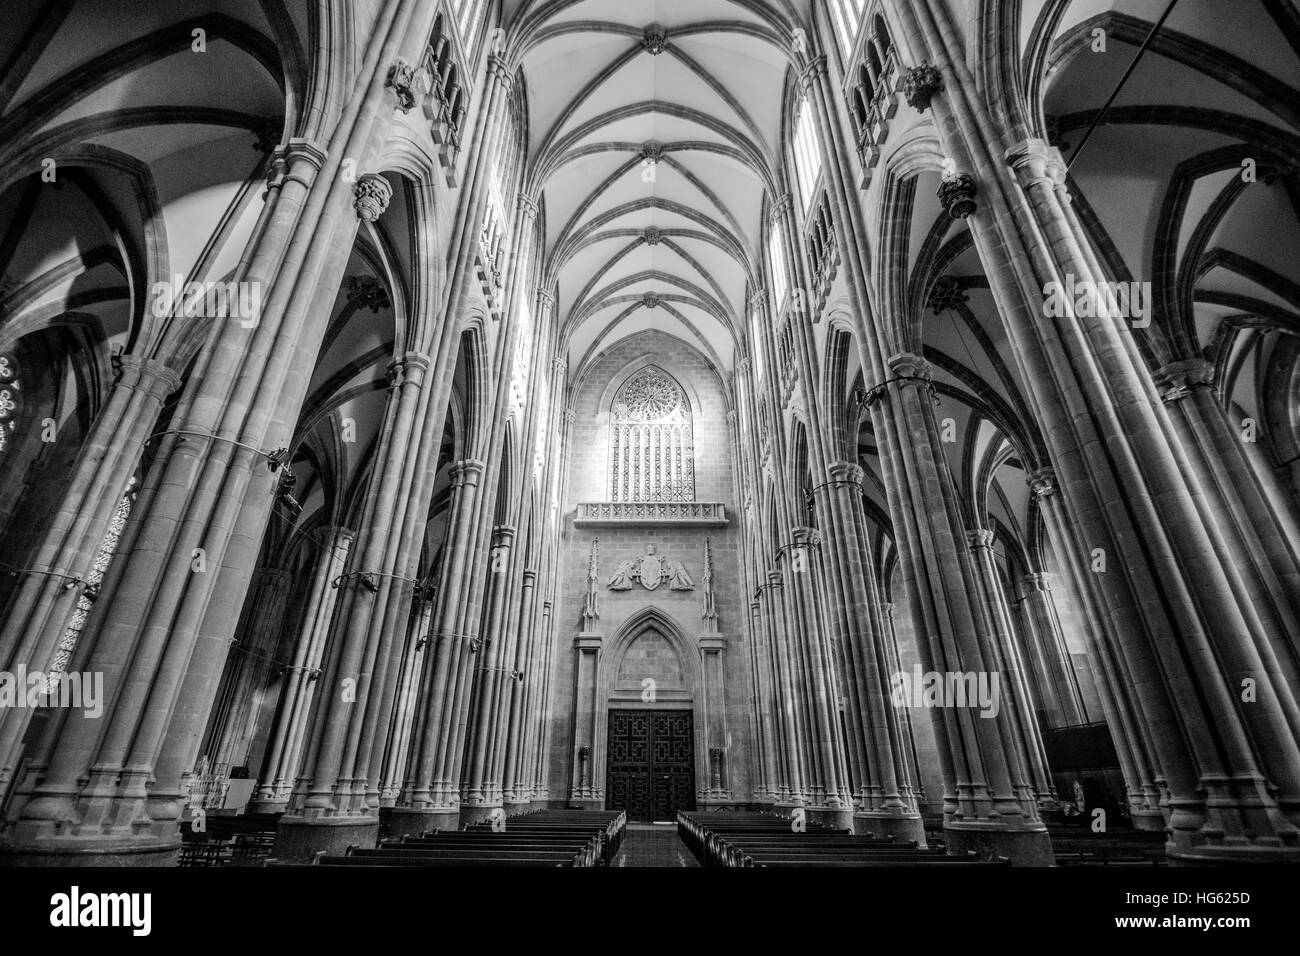 Interior Of Cathedral Mary Immaculate In Vitoria Spain Built 20th Century With High Gothic Style